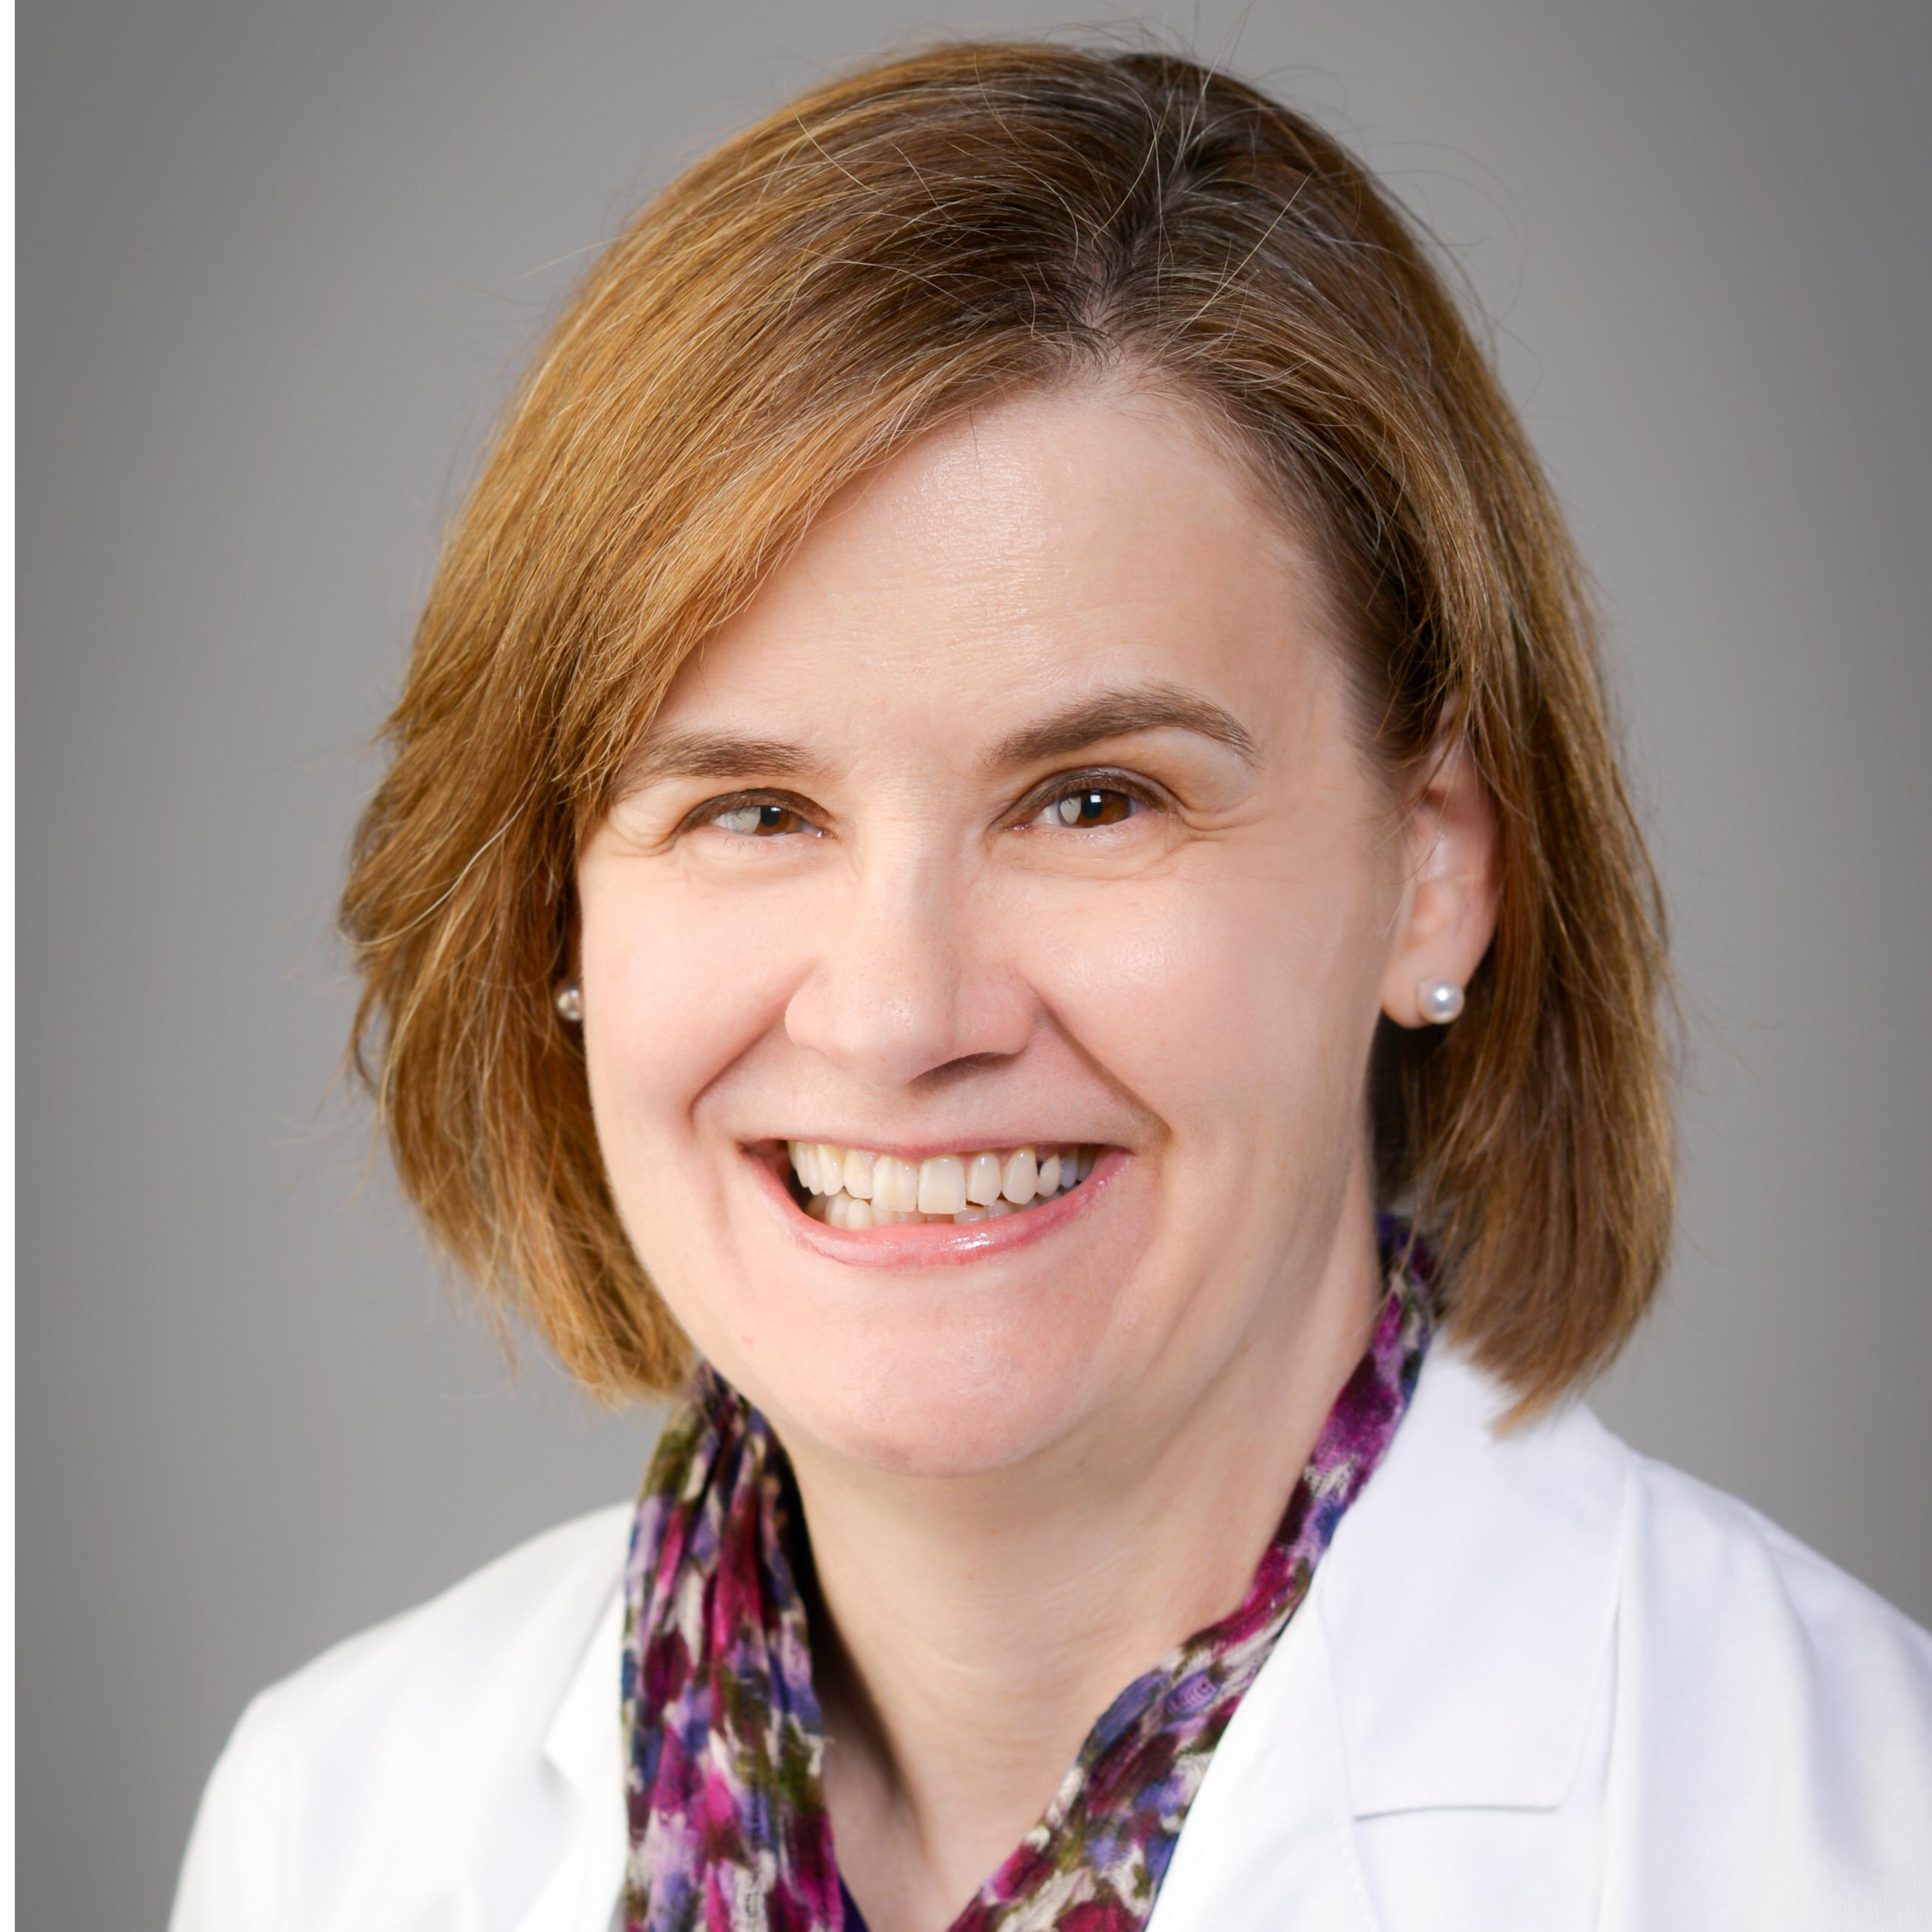 Image For Dr. Sarah Endicott Barlow MD